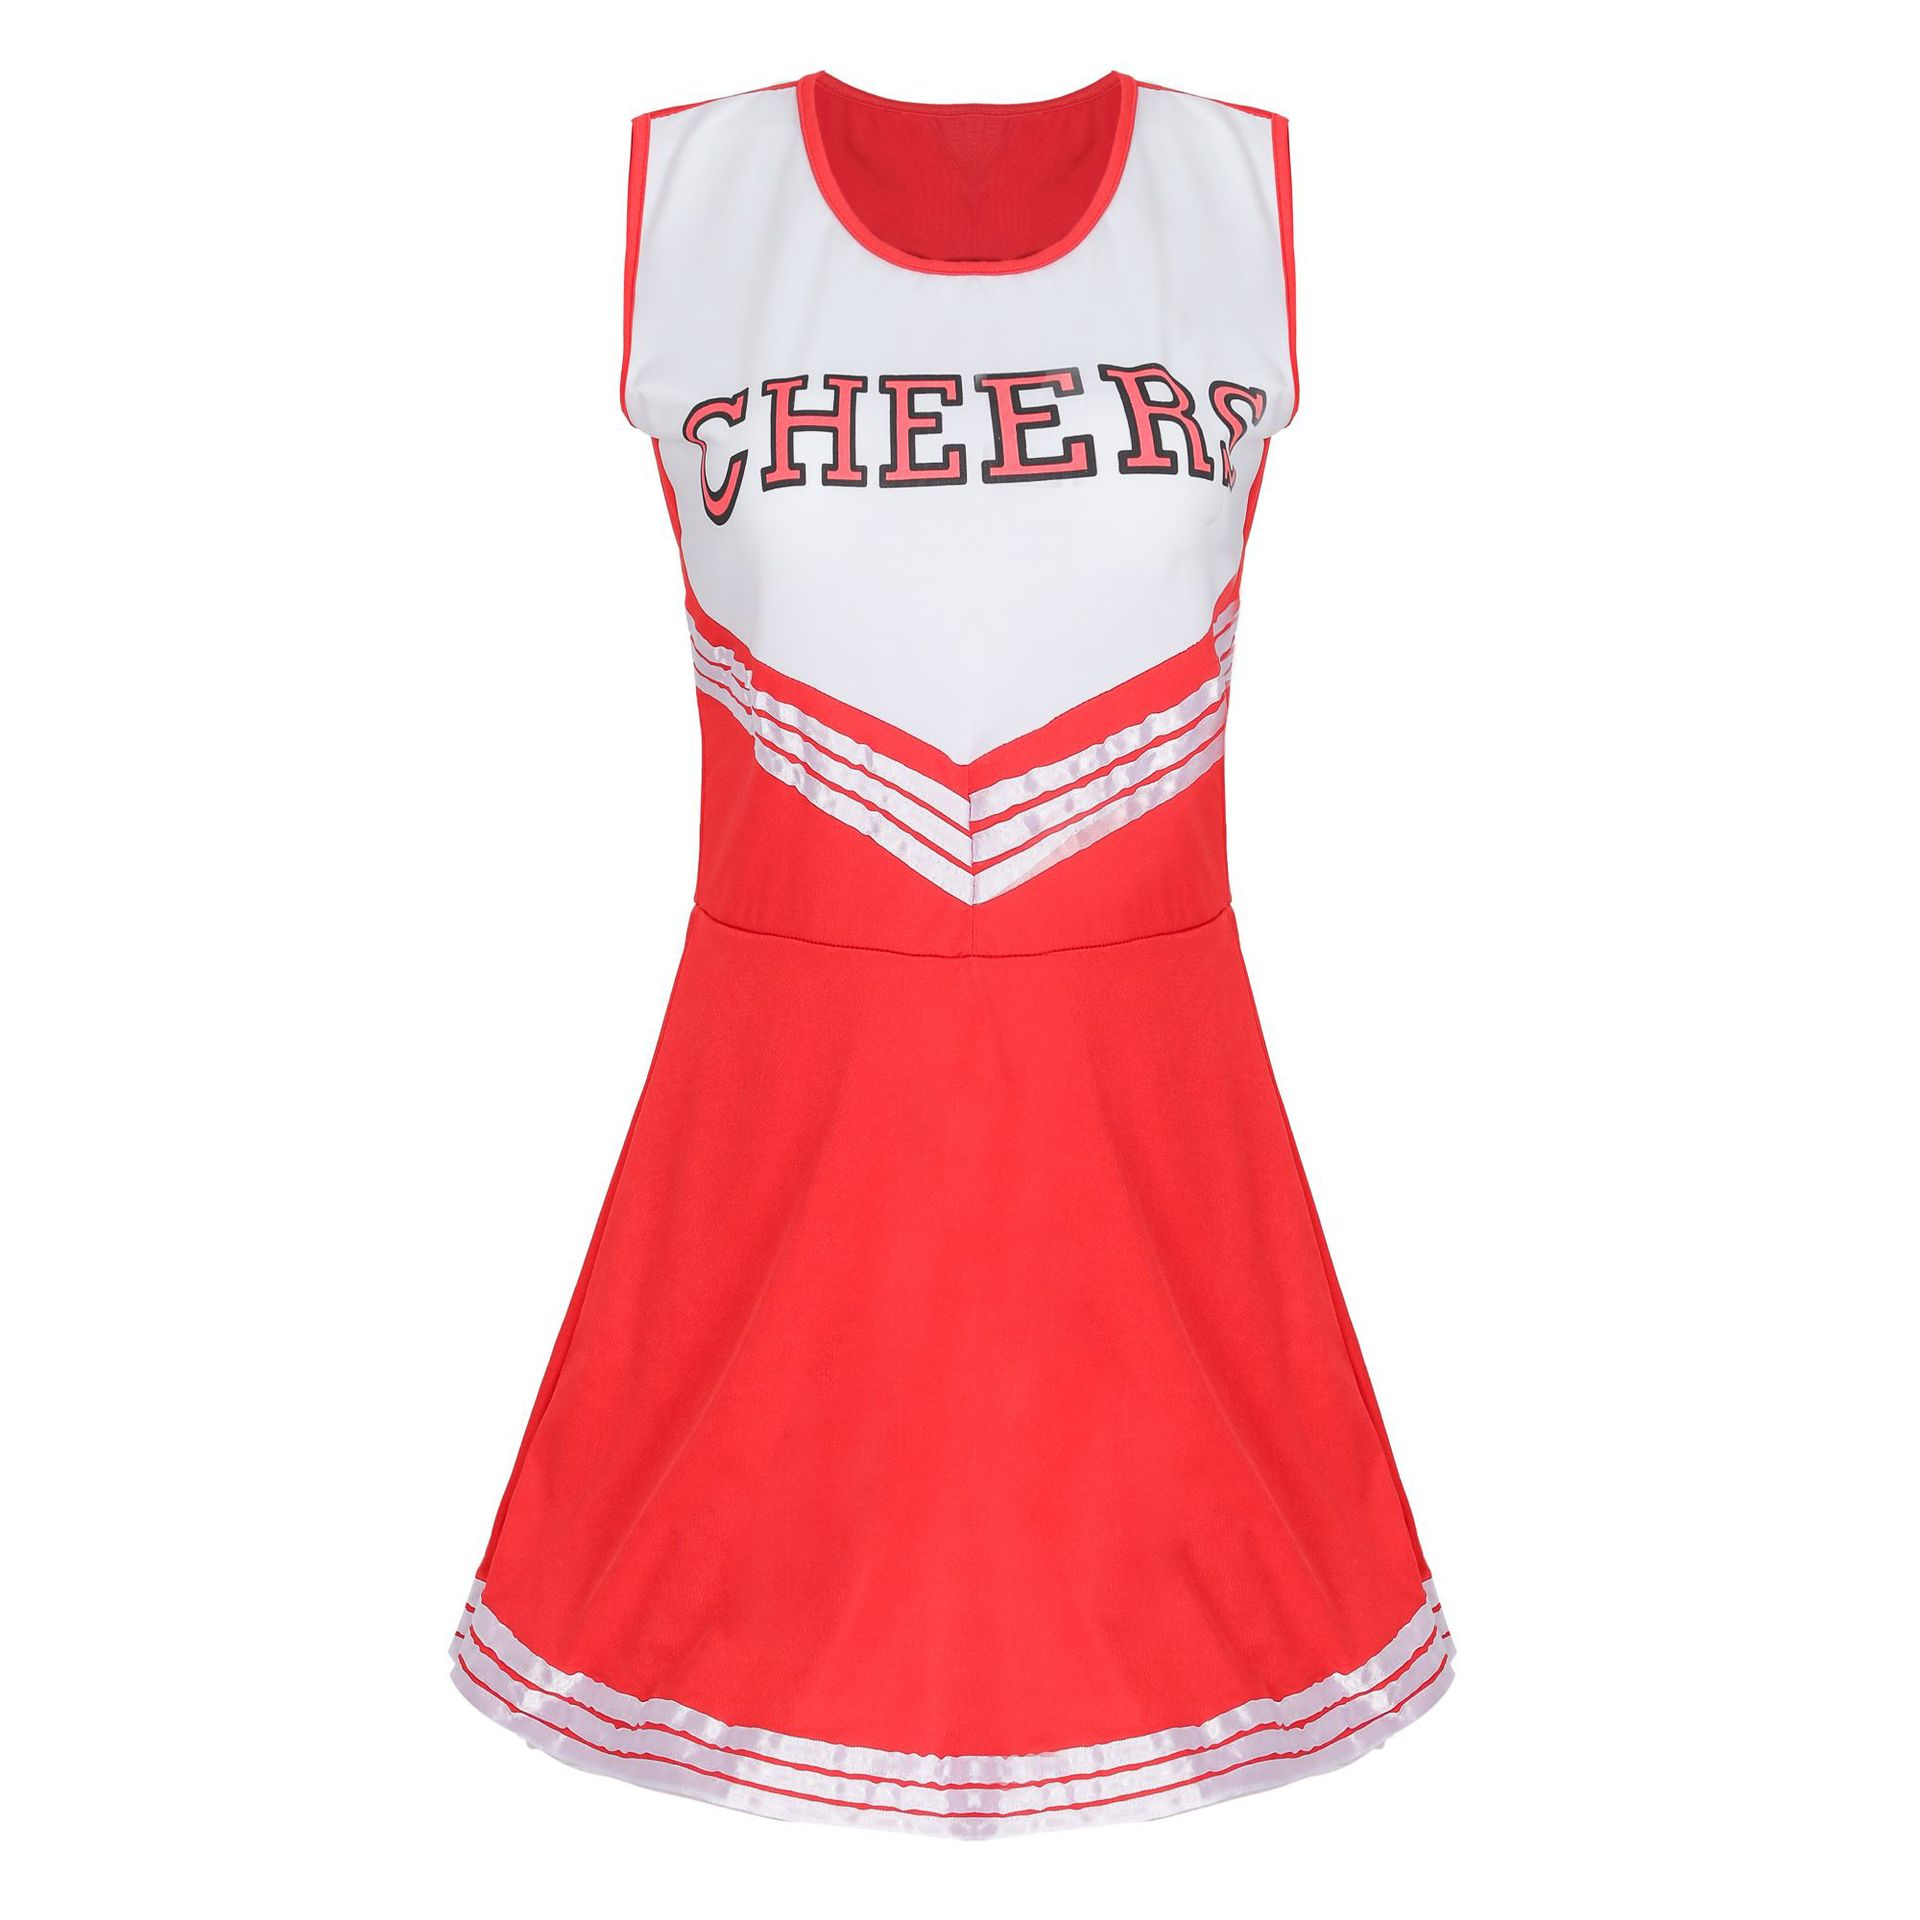 Cheerleader Stage Performance Red Dress+Pompoms Cheerleading Costumes Adult High School Cheer Uniform Girl Dancing Show